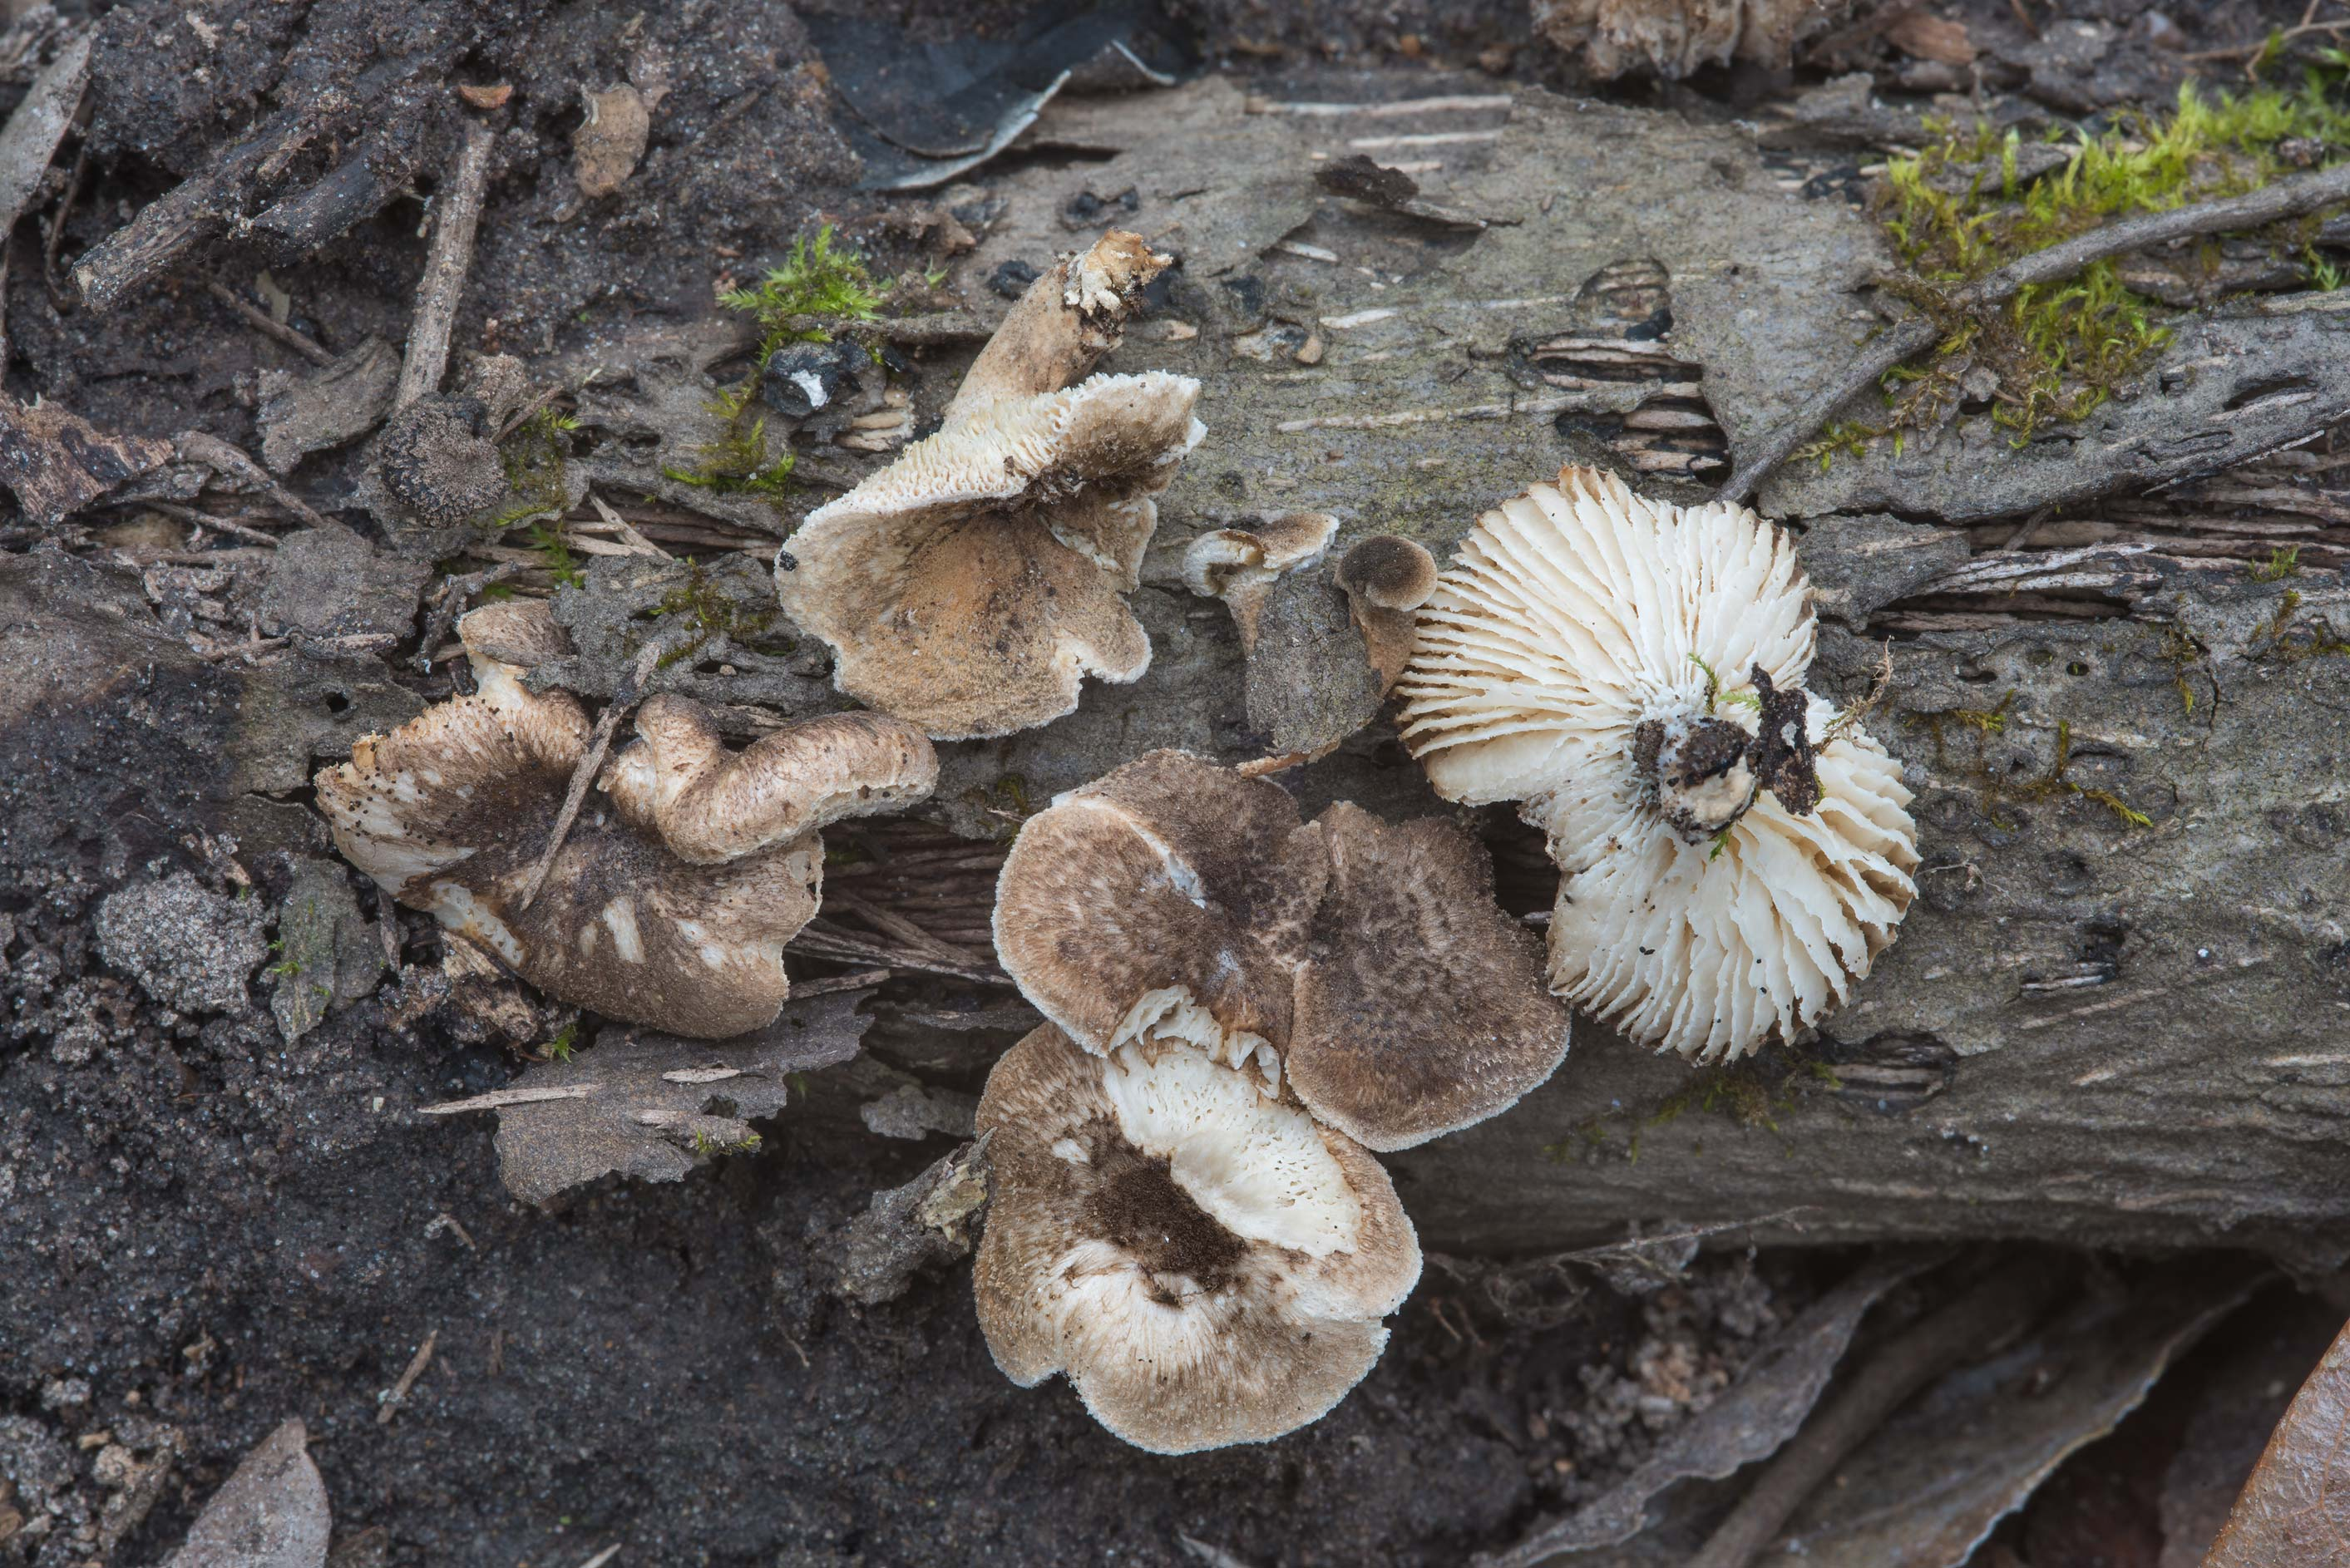 Tiger sawgill mushrooms (Lentinus tigrinus) in Hensel Park. College Station, Texas